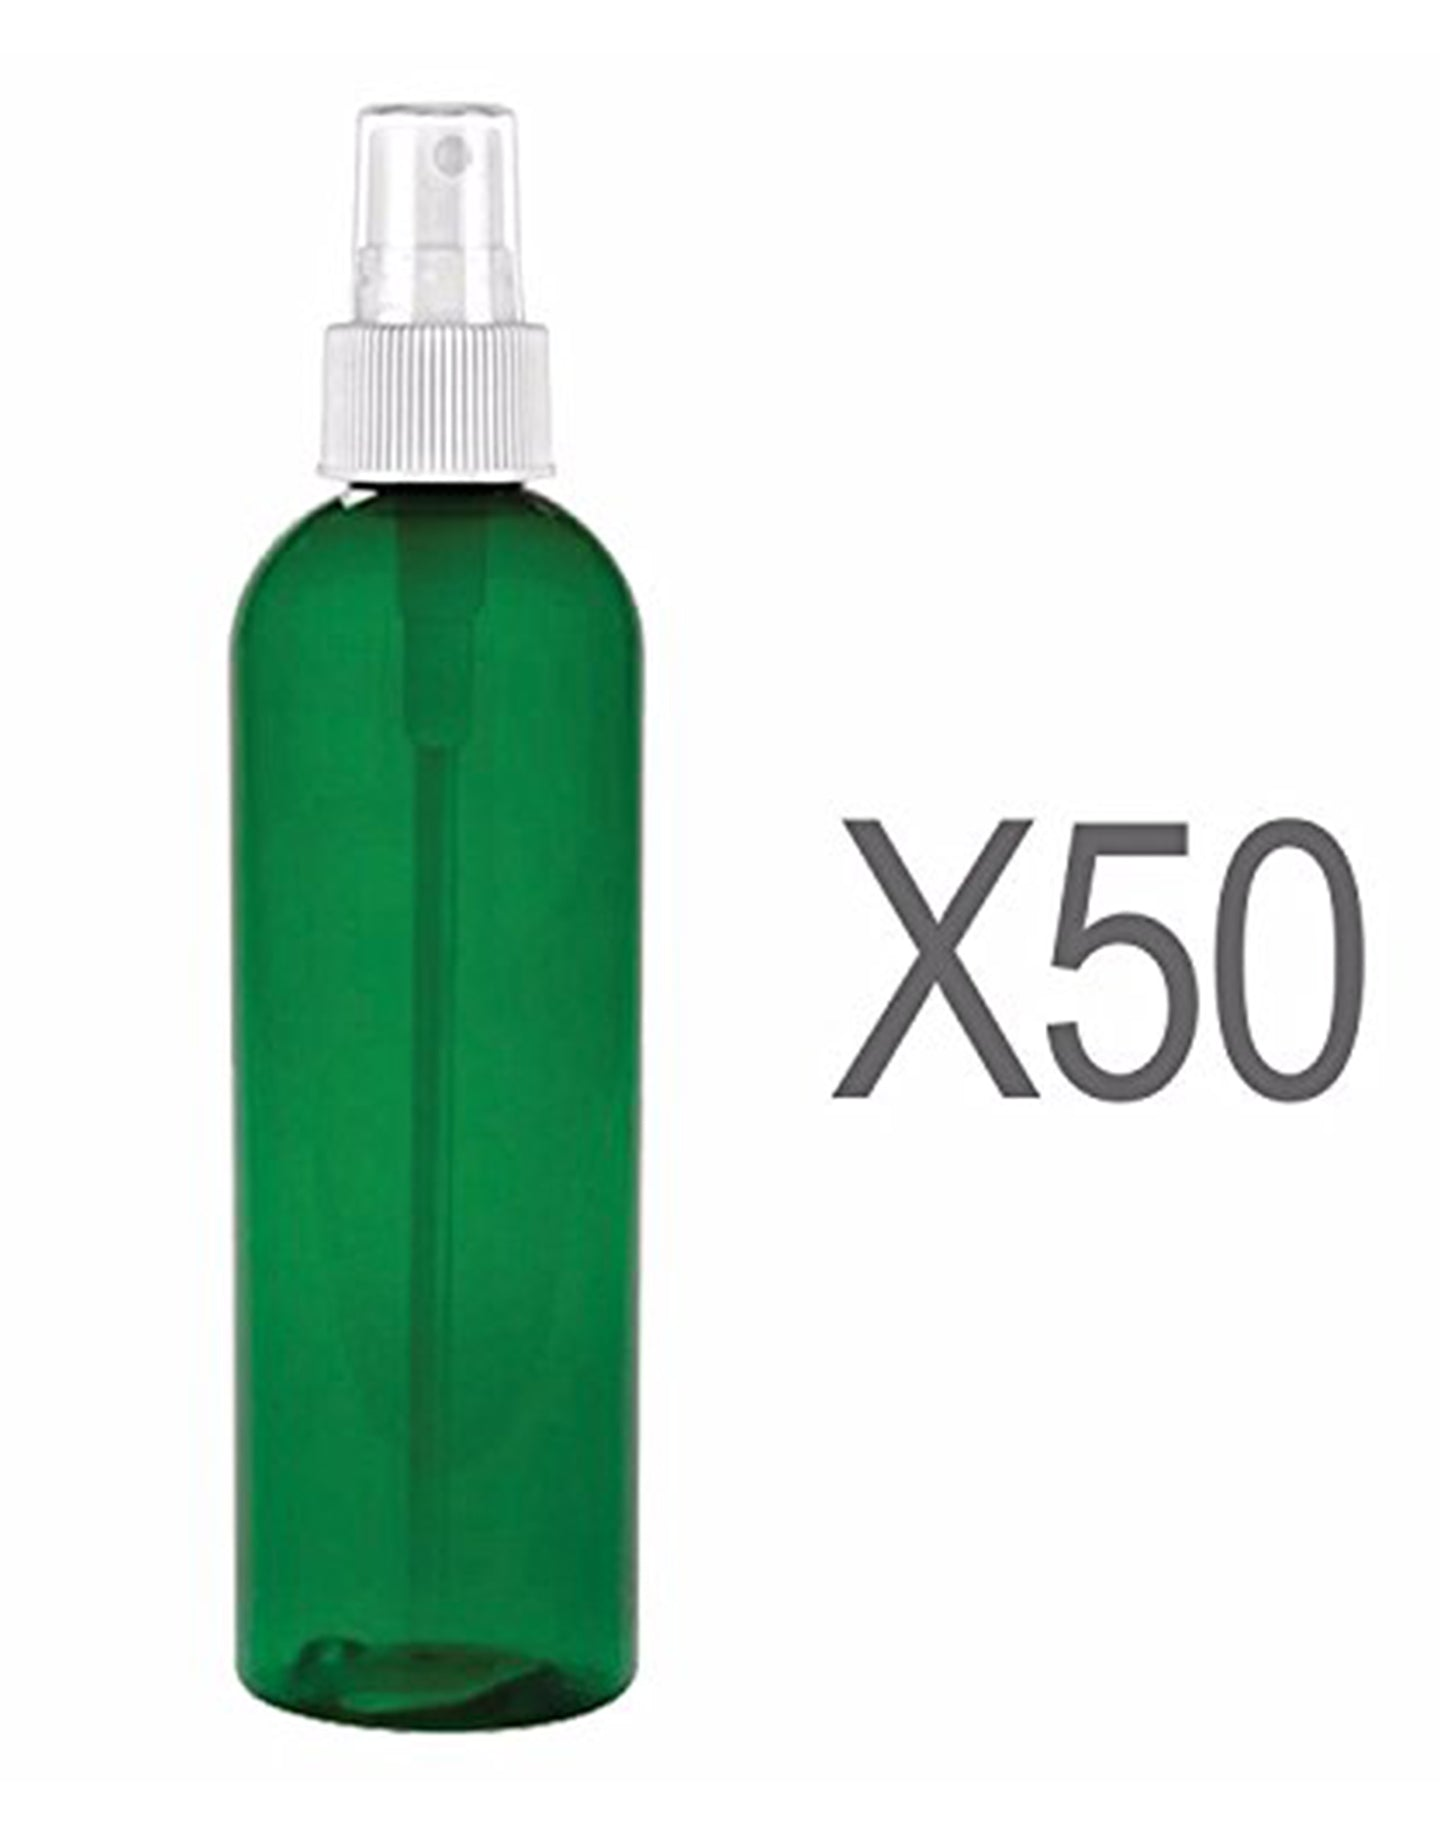 MoYo Natural Labs 4 oz Spray Bottles Fine Mist Empty Travel Containers, BPA Free PET Plastic for Essential Oils and Liquids/Cosmetics (Neck 20-410) (Pack of 50, Forest Green)